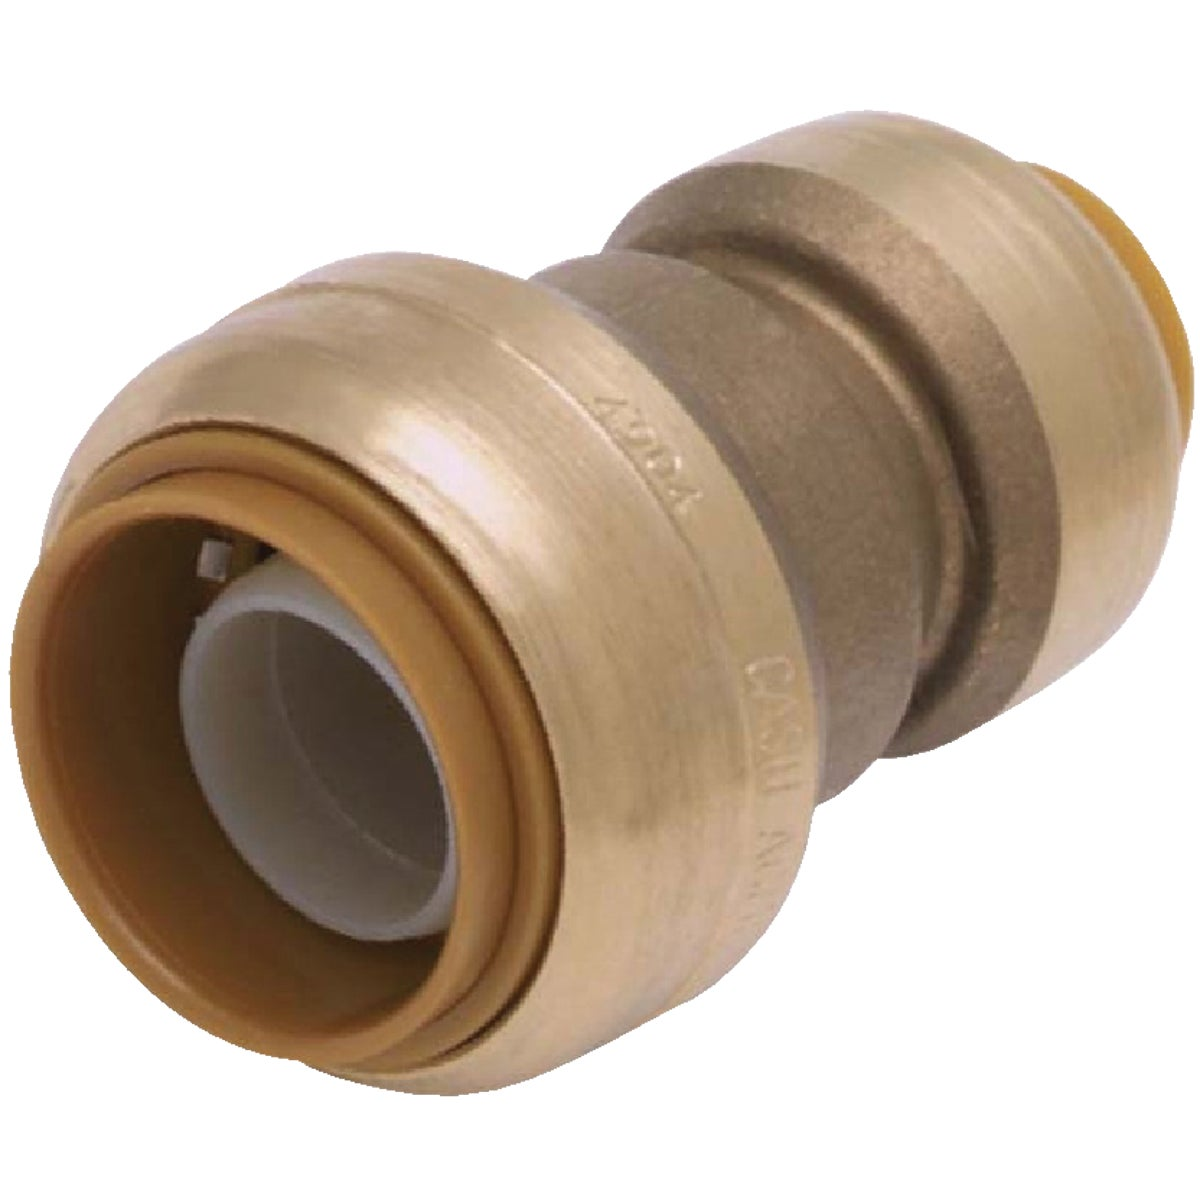 1/2X3/4 PUSH COUPLING - U058LFA by Cash Acme